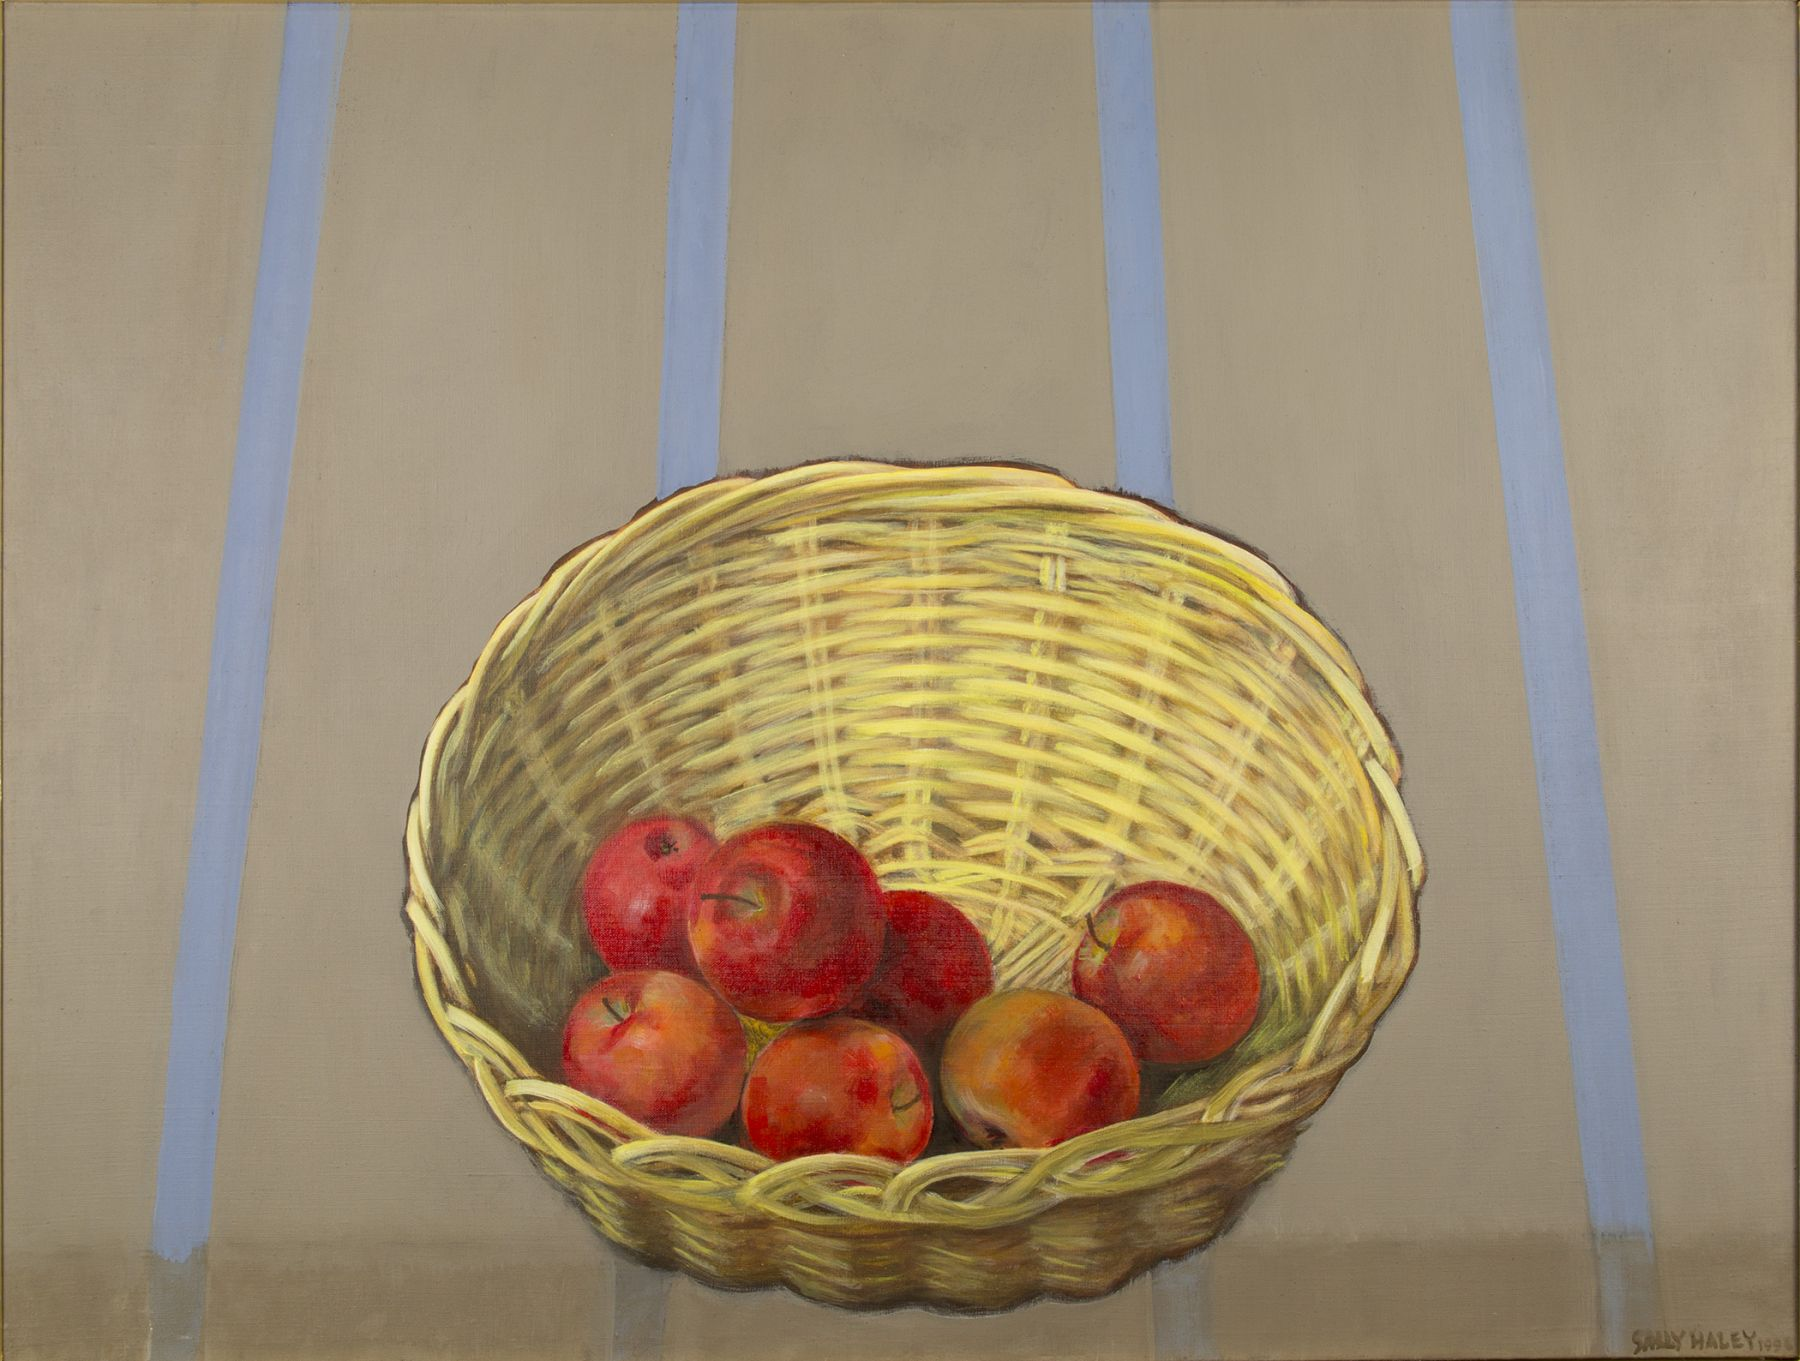 Haley - basket with red apples